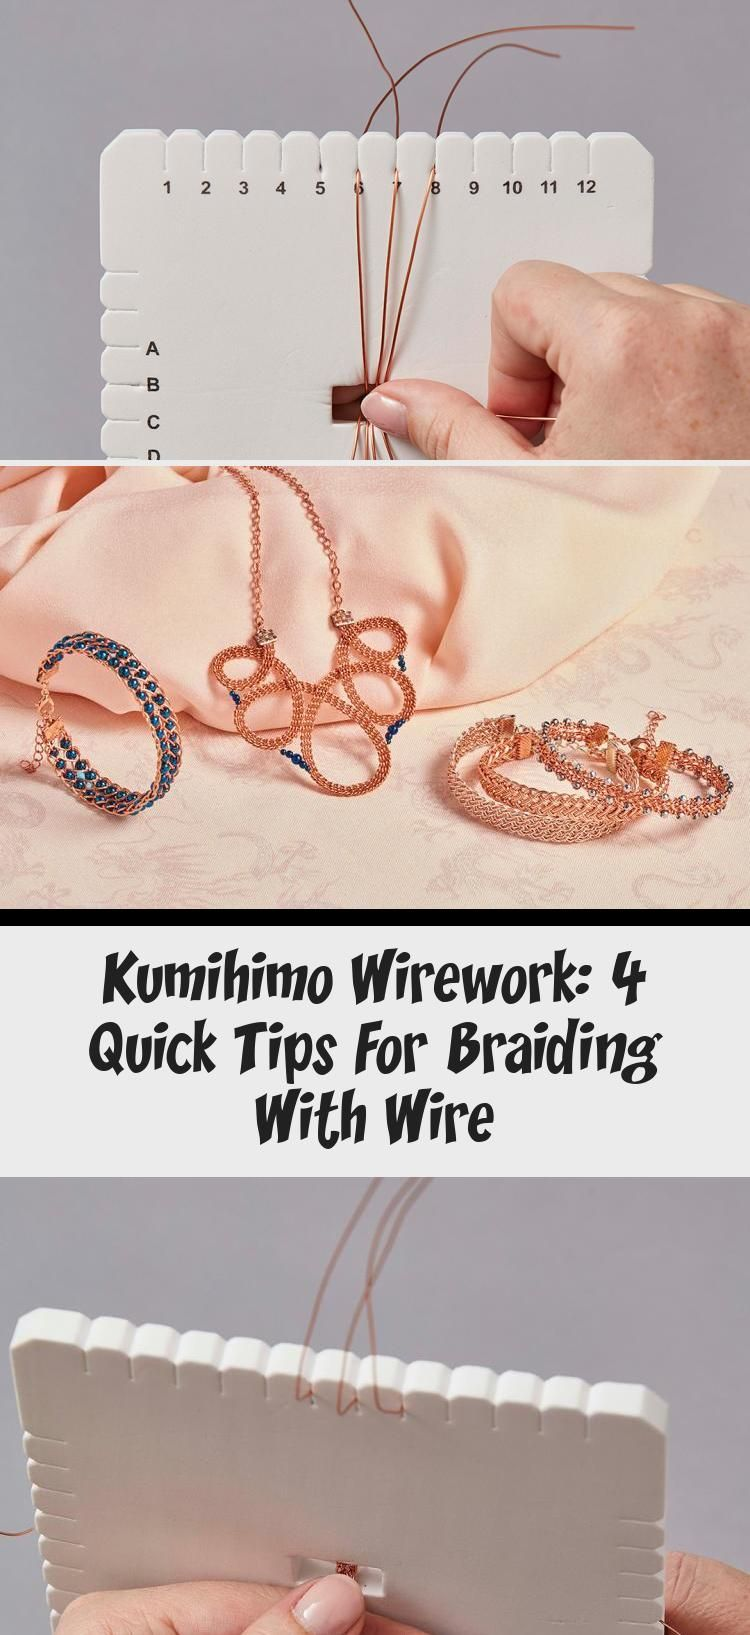 Photo of Kumihimo Wirework: 4 Quick Tips For Braiding With Wire – Jewelrys